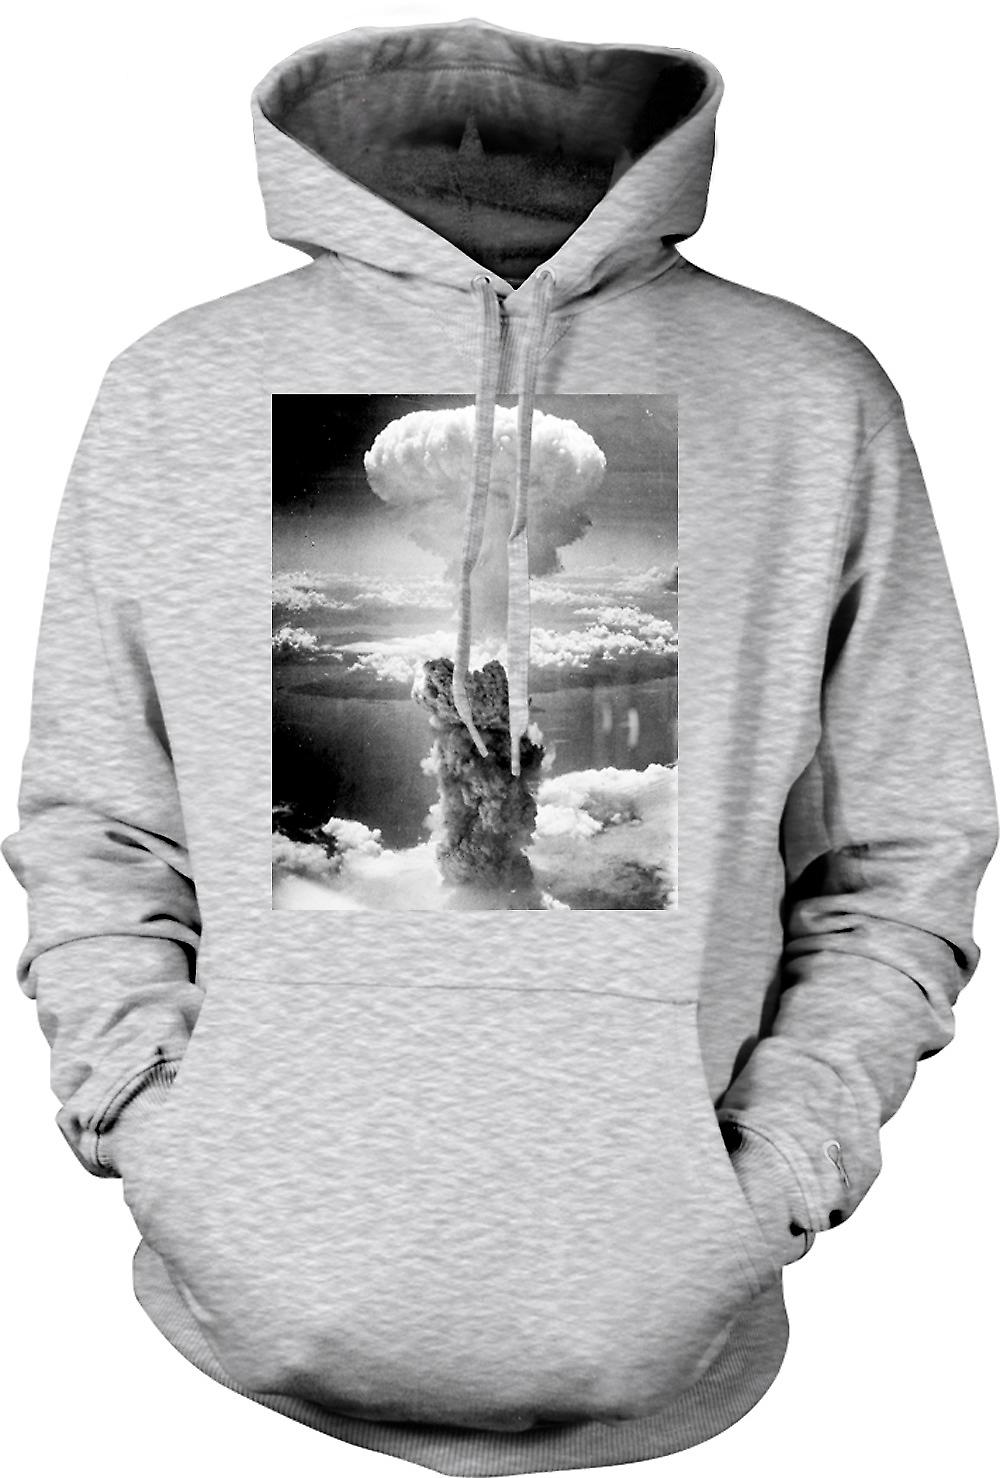 Mens Hoodie - Nuclear Mushroom Cloud  And White